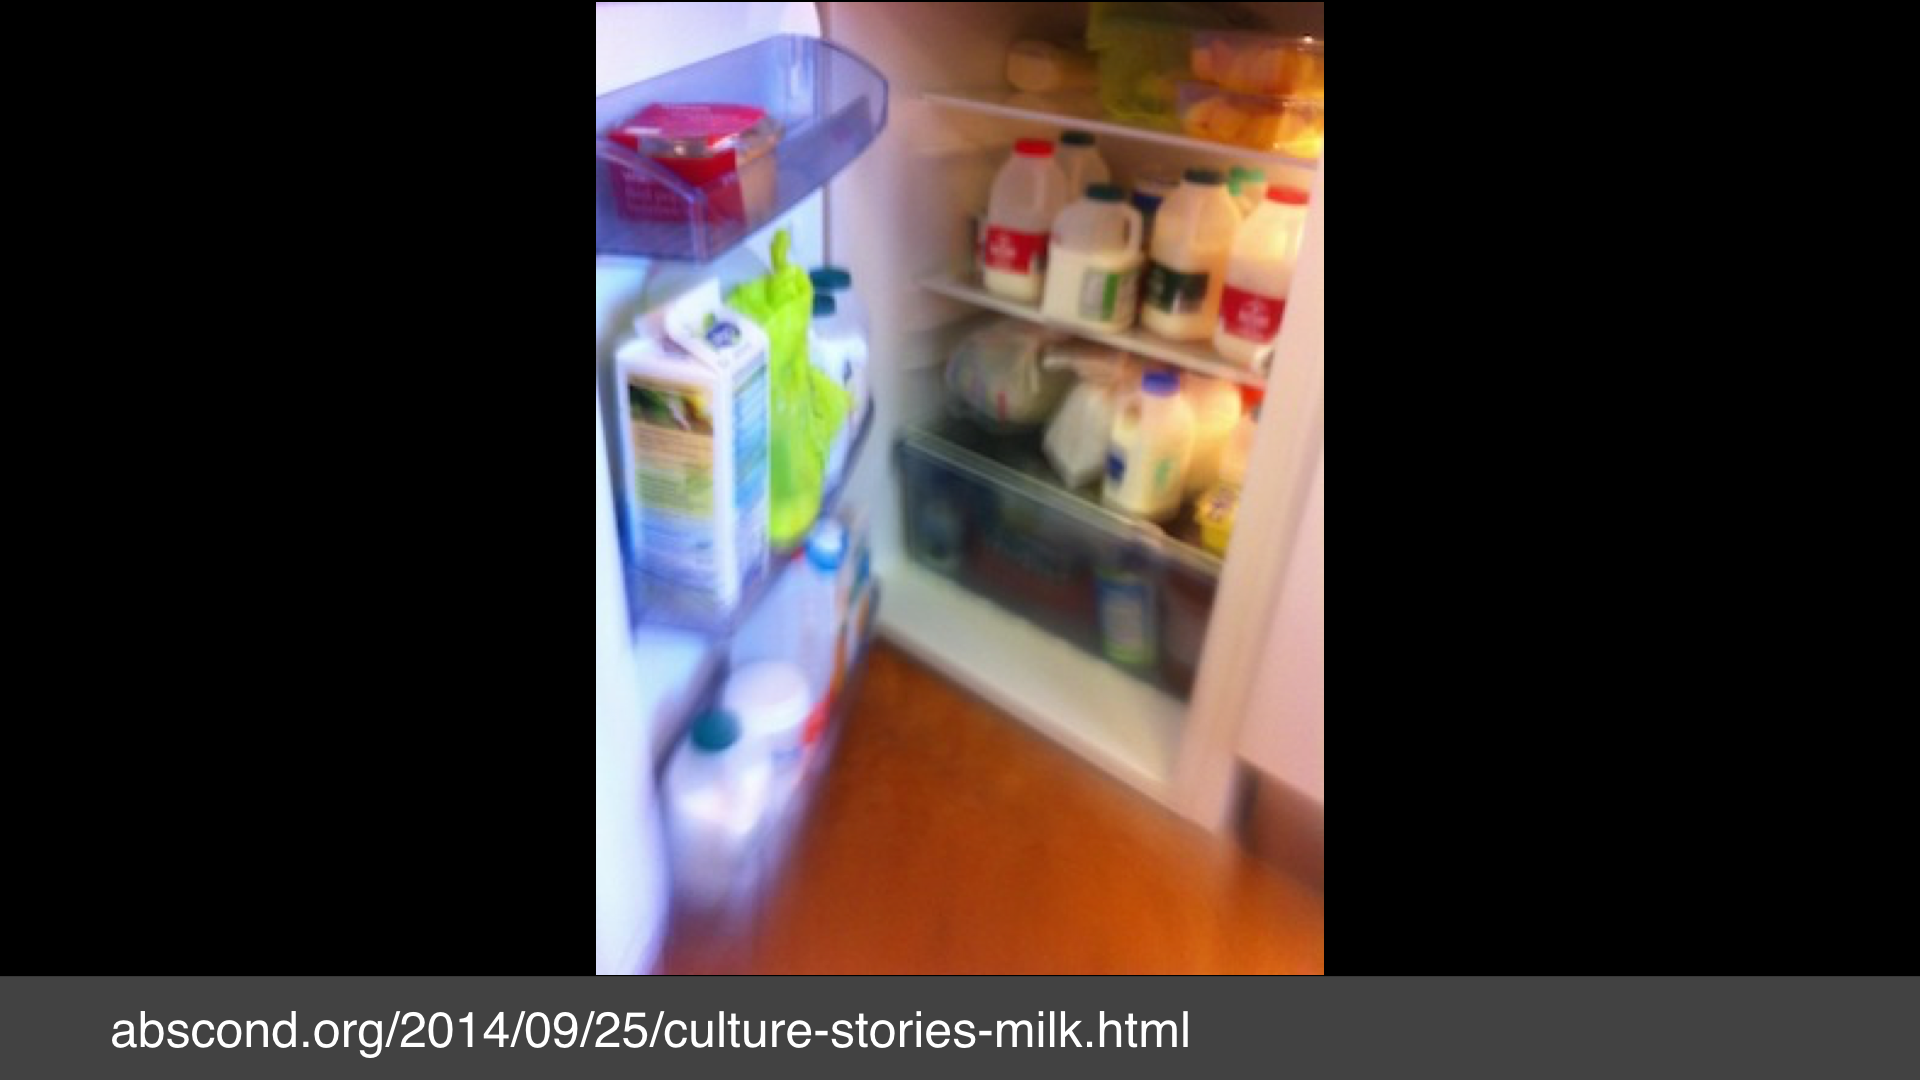 A photo of a fridge full of small bottles of milk